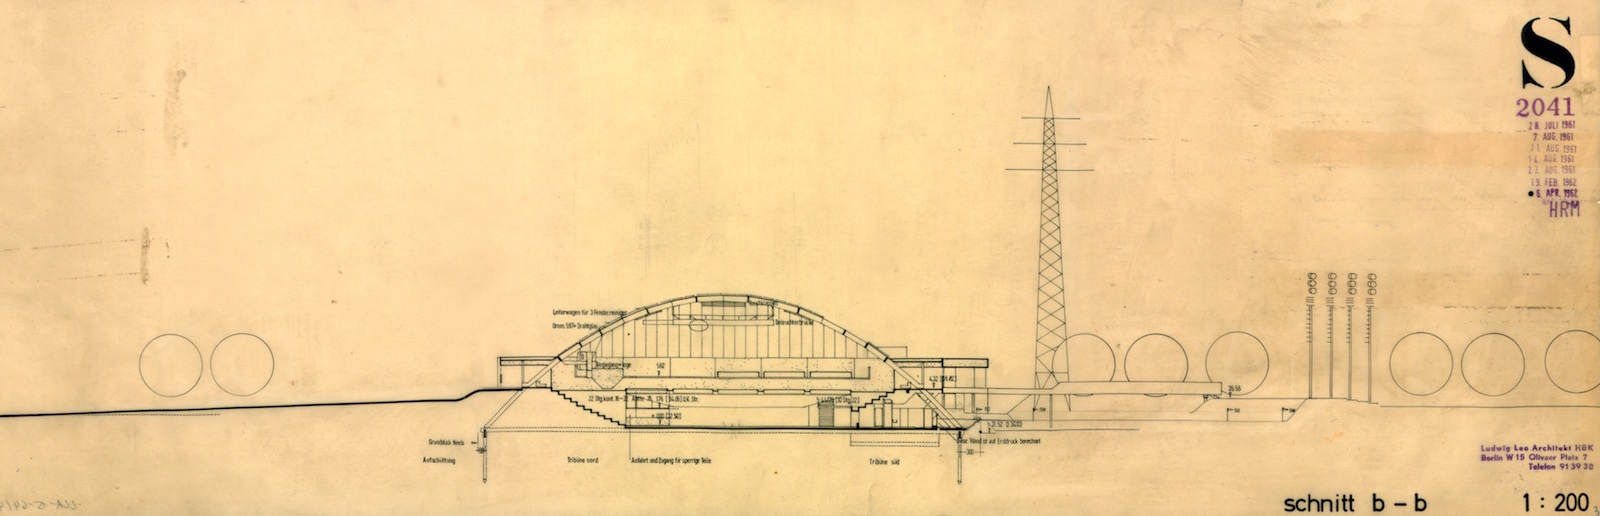 A section through the Charlottenburg Sports Hall. (Section drawing: Ludwig-Leo-Archiv in der Akademie der Künste, Berlin © Morag Leo)